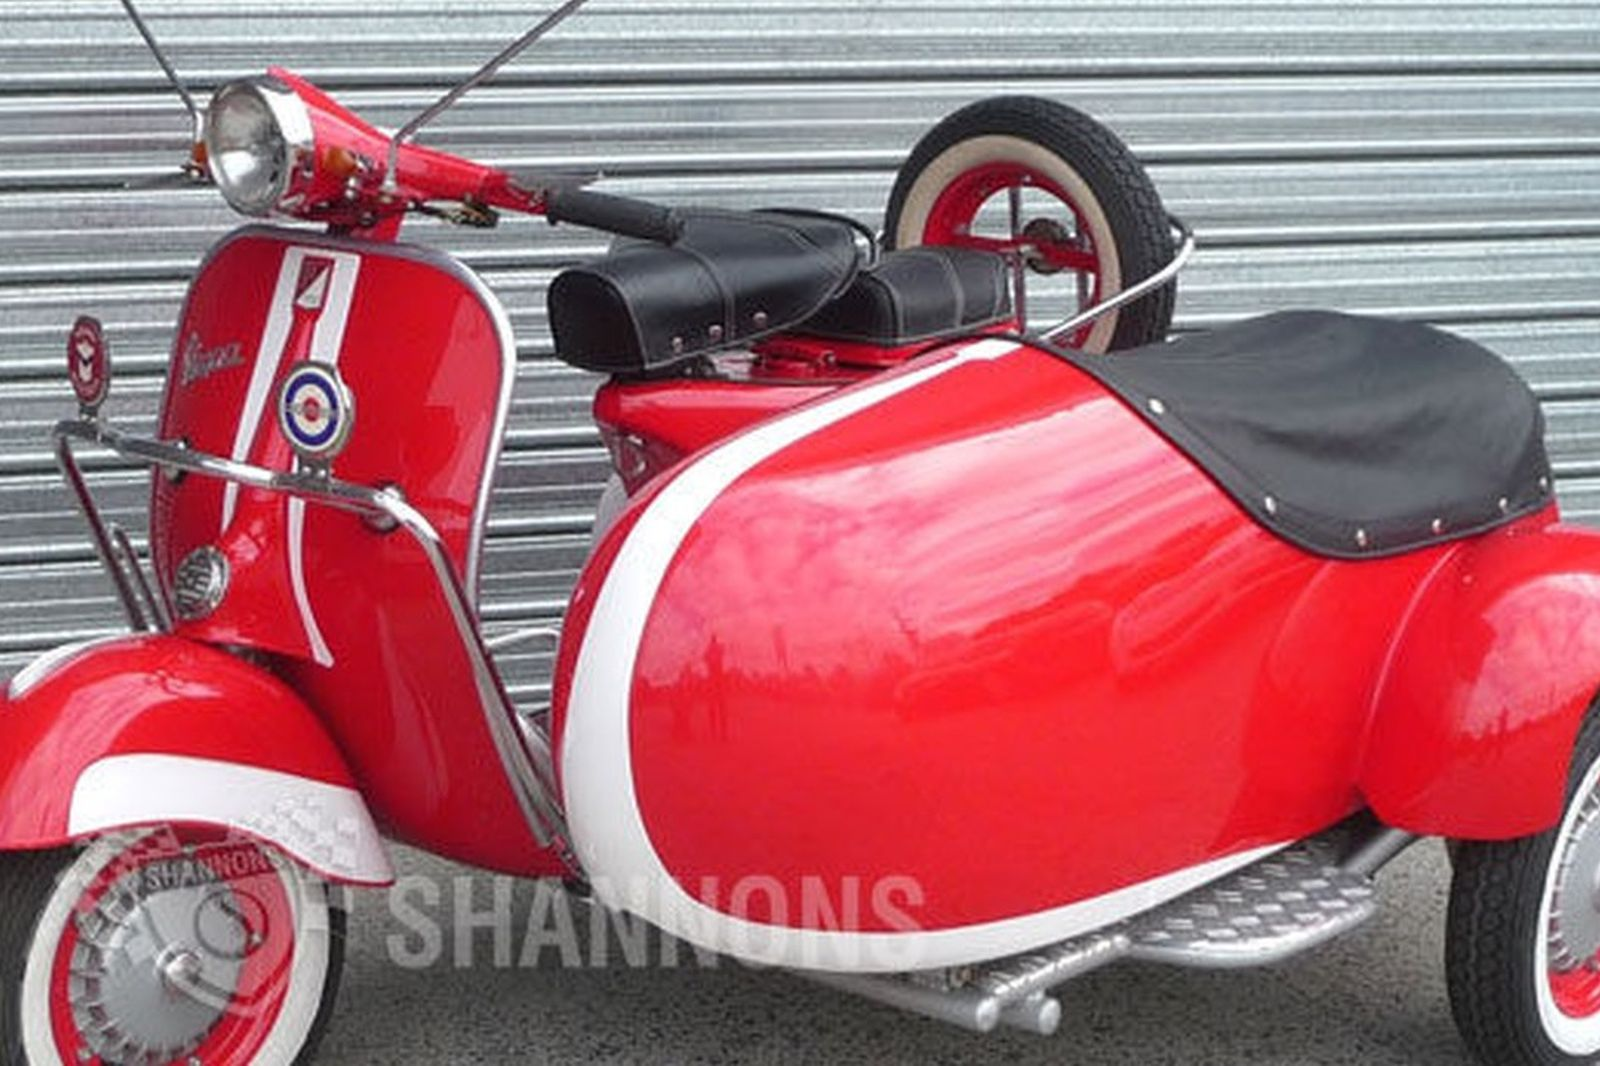 Sold Vespa 150cc Scooter With Sidecar Auctions Lot 31 Shannons